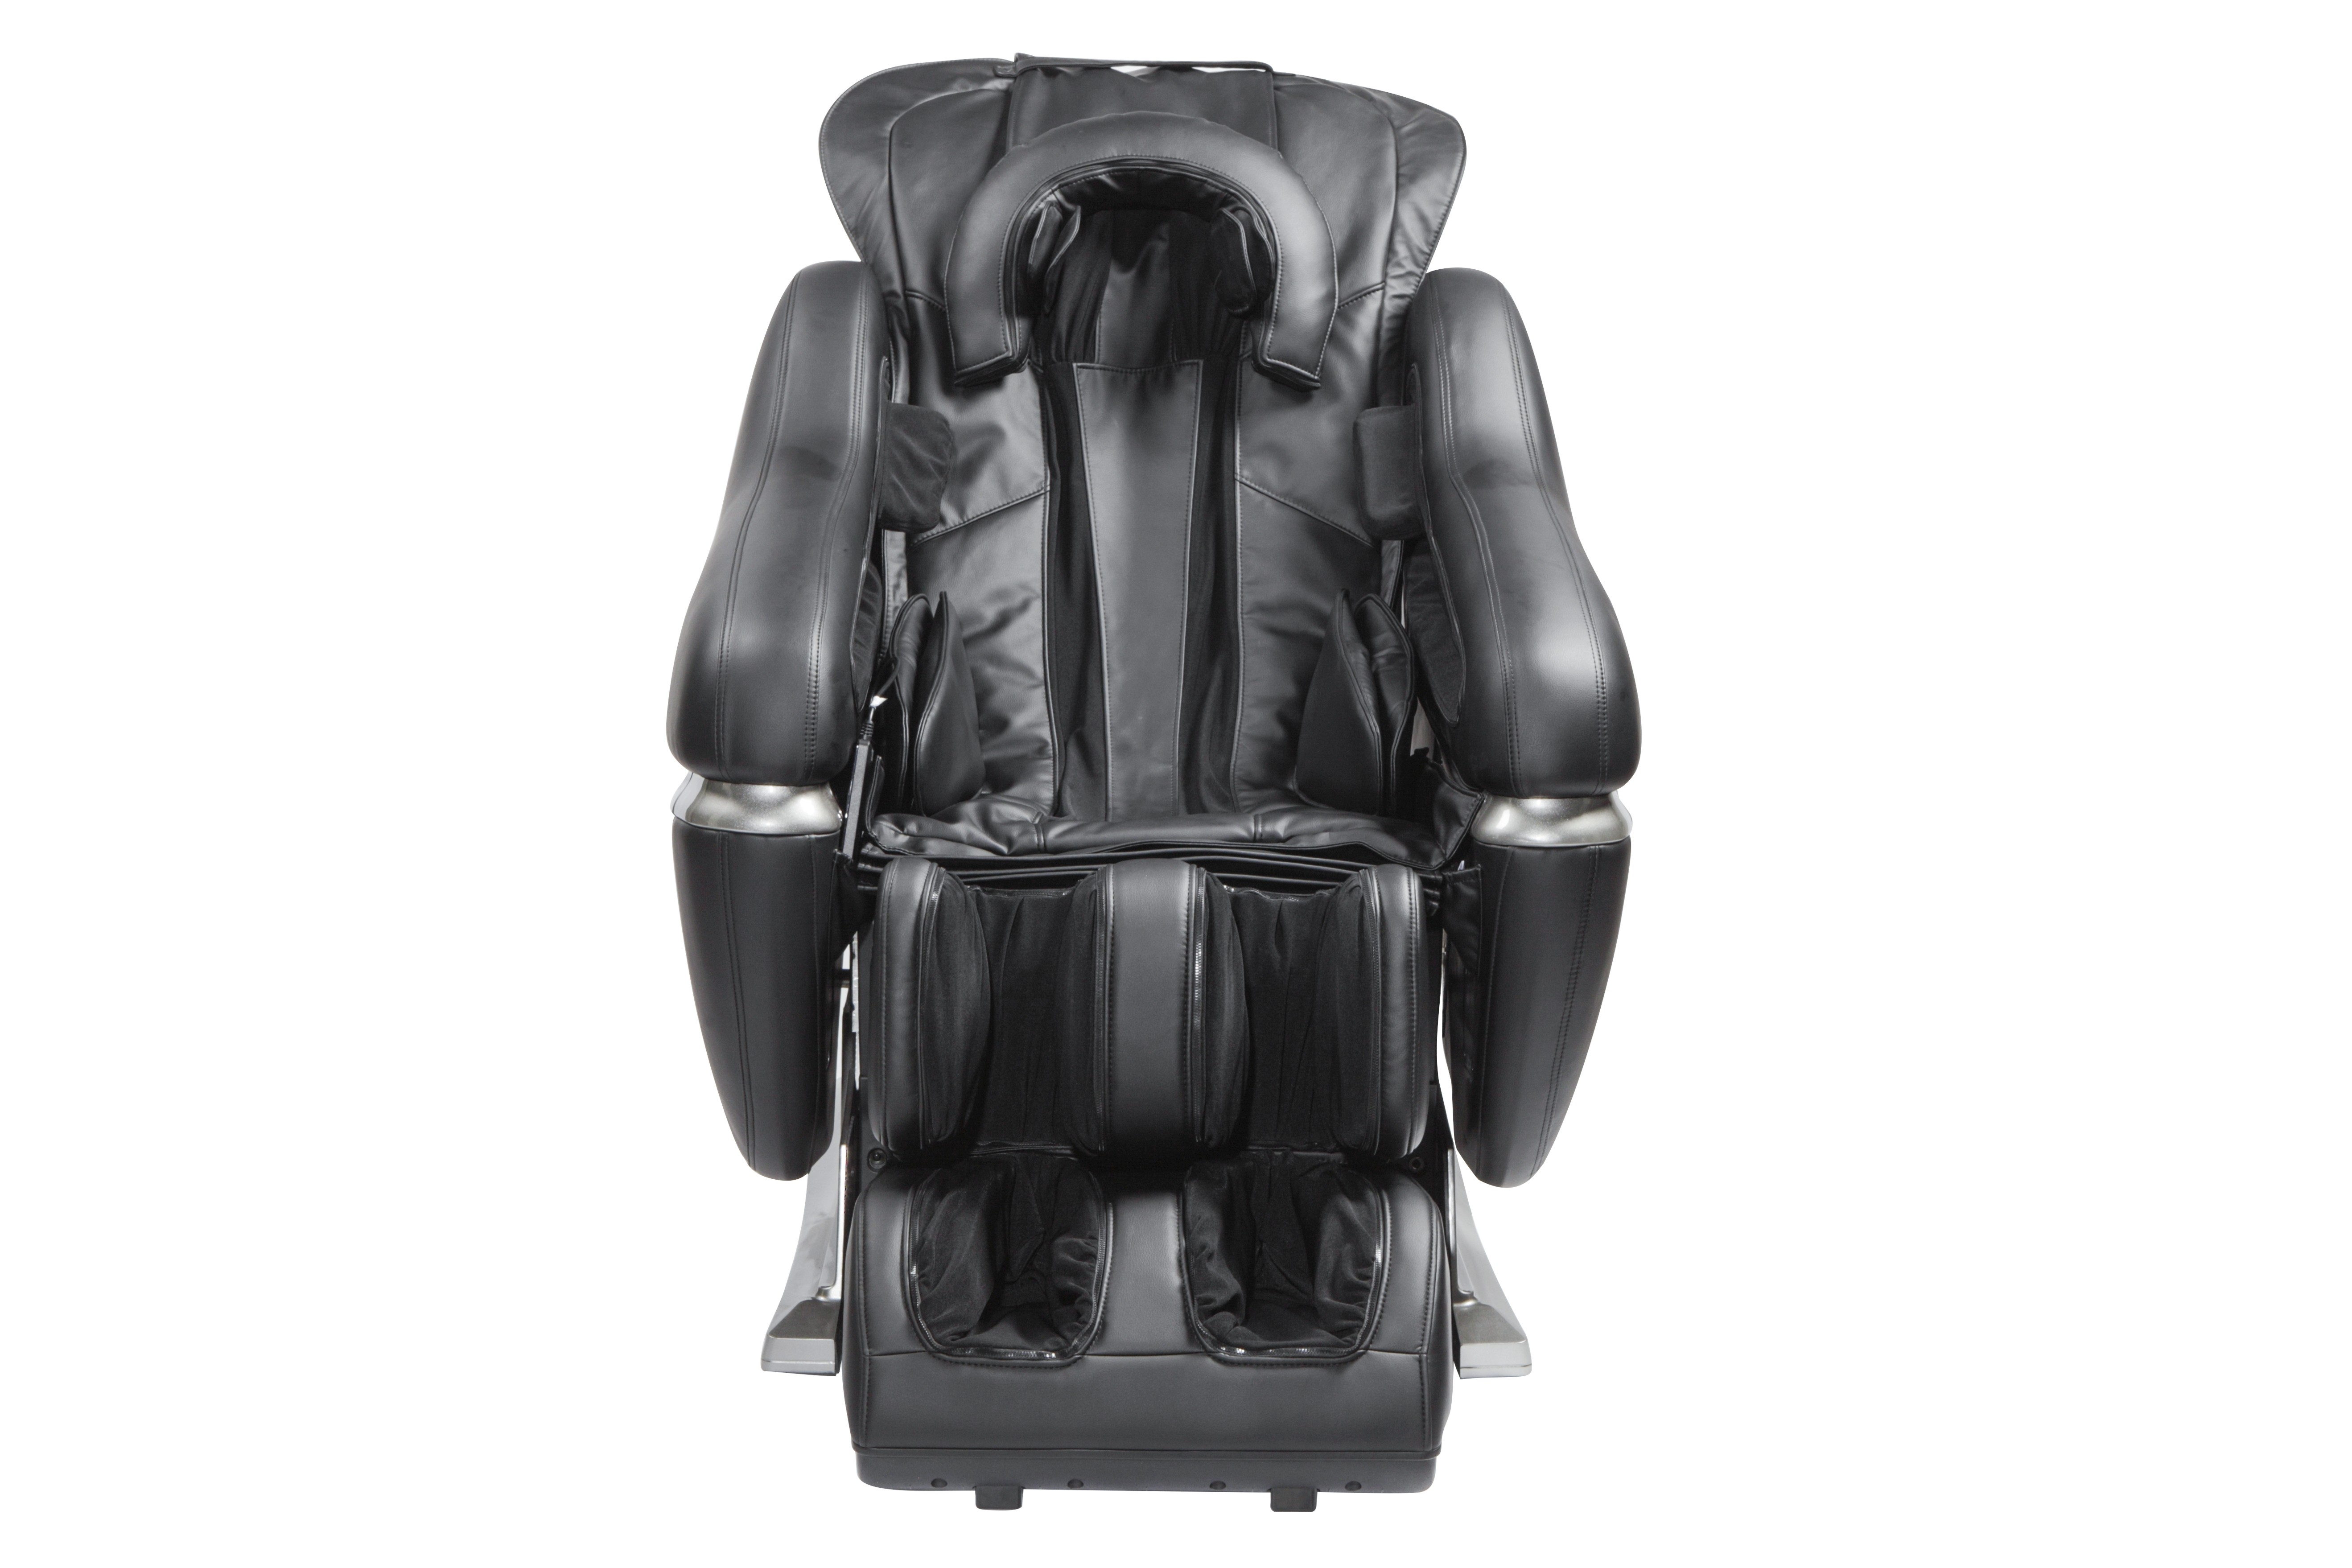 Ultimate L III Massage Chair